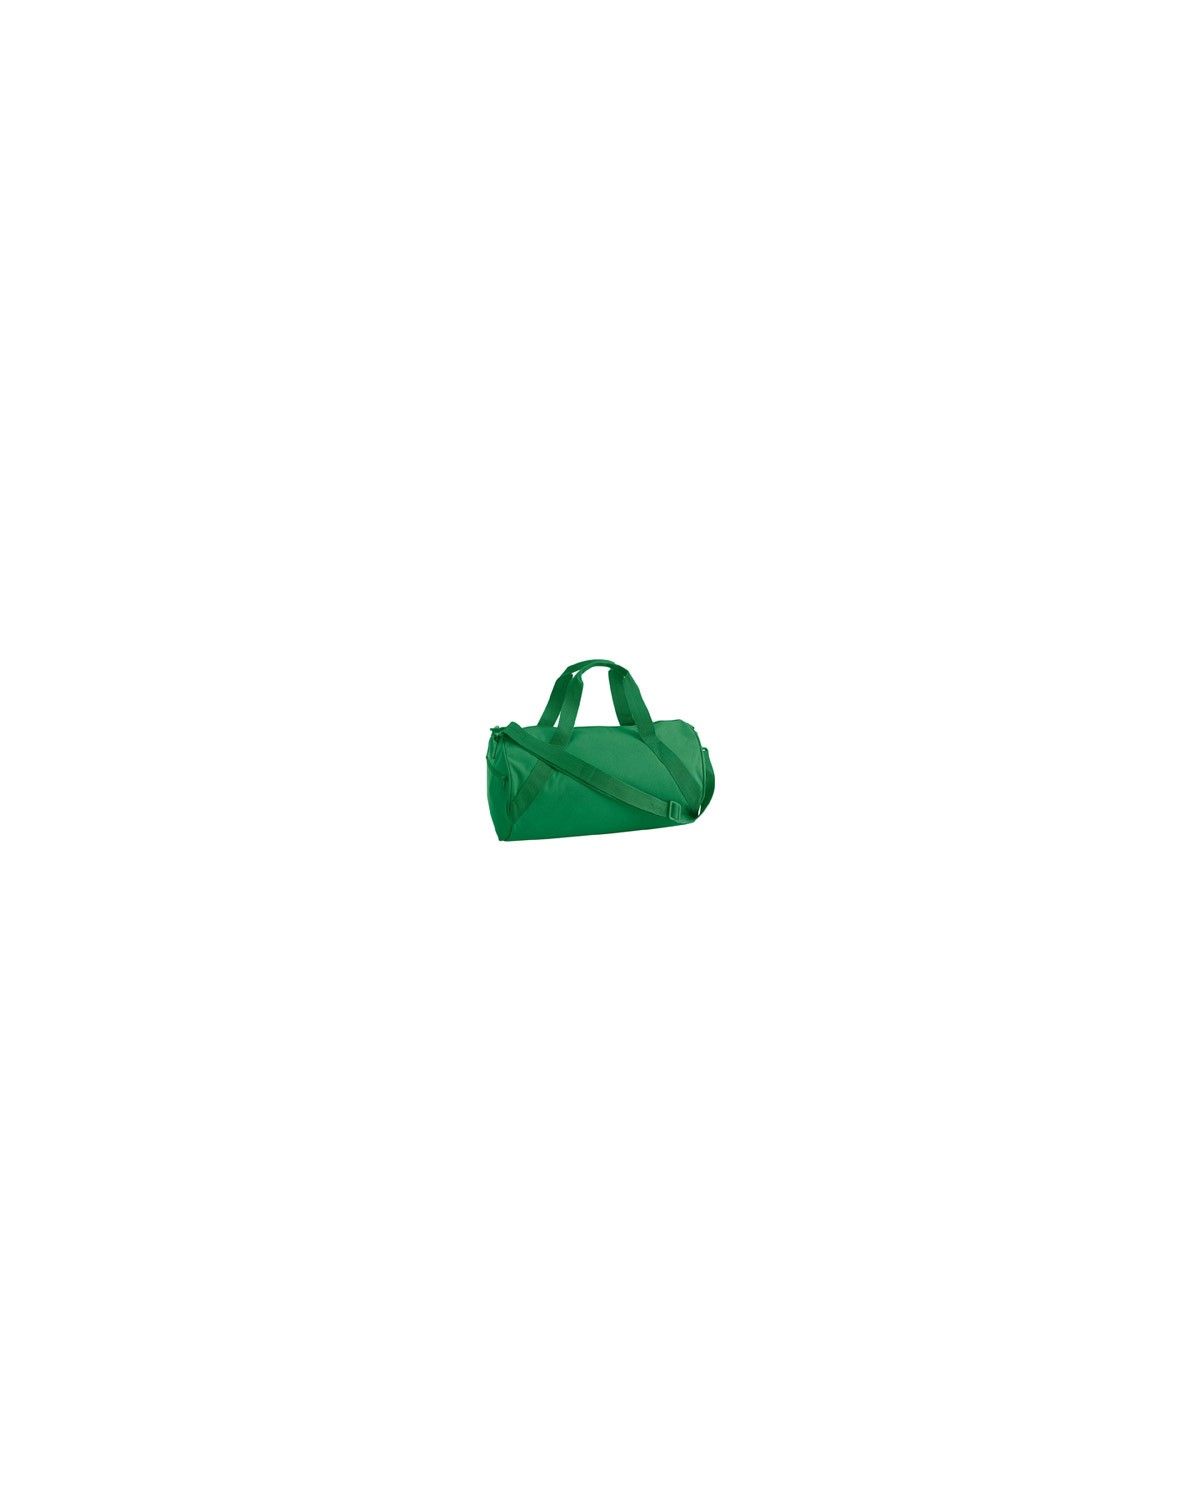 8805 Liberty Bags KELLY GREEN